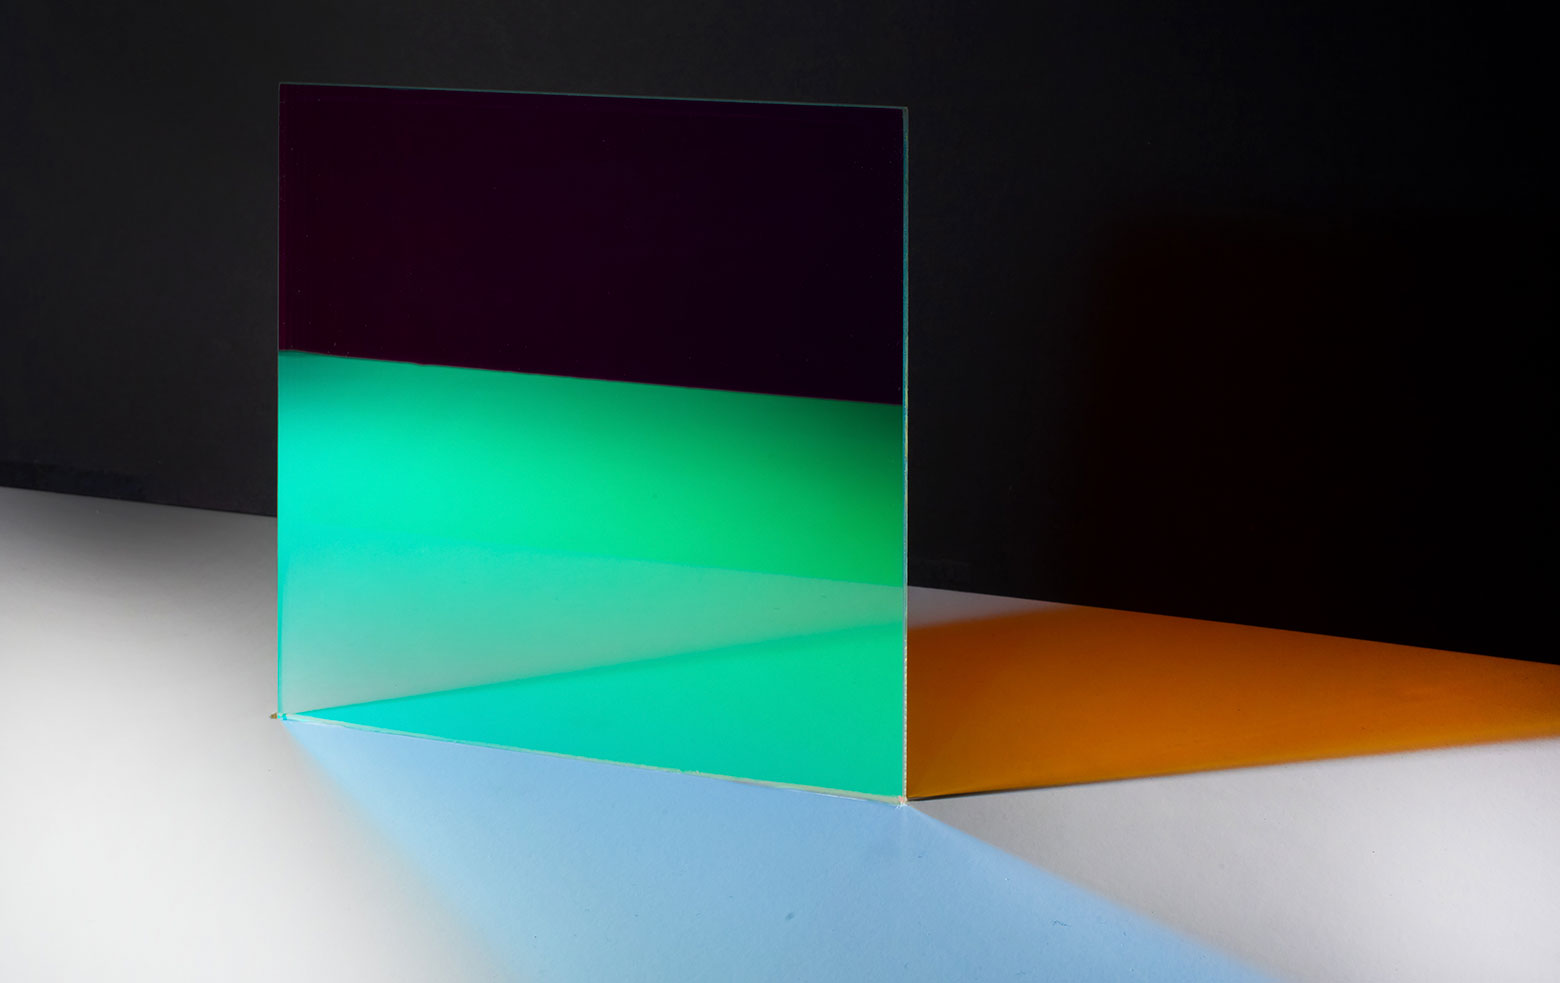 The colour effect glass is in fact colourless, the actual effects are created by shadows and reflections.